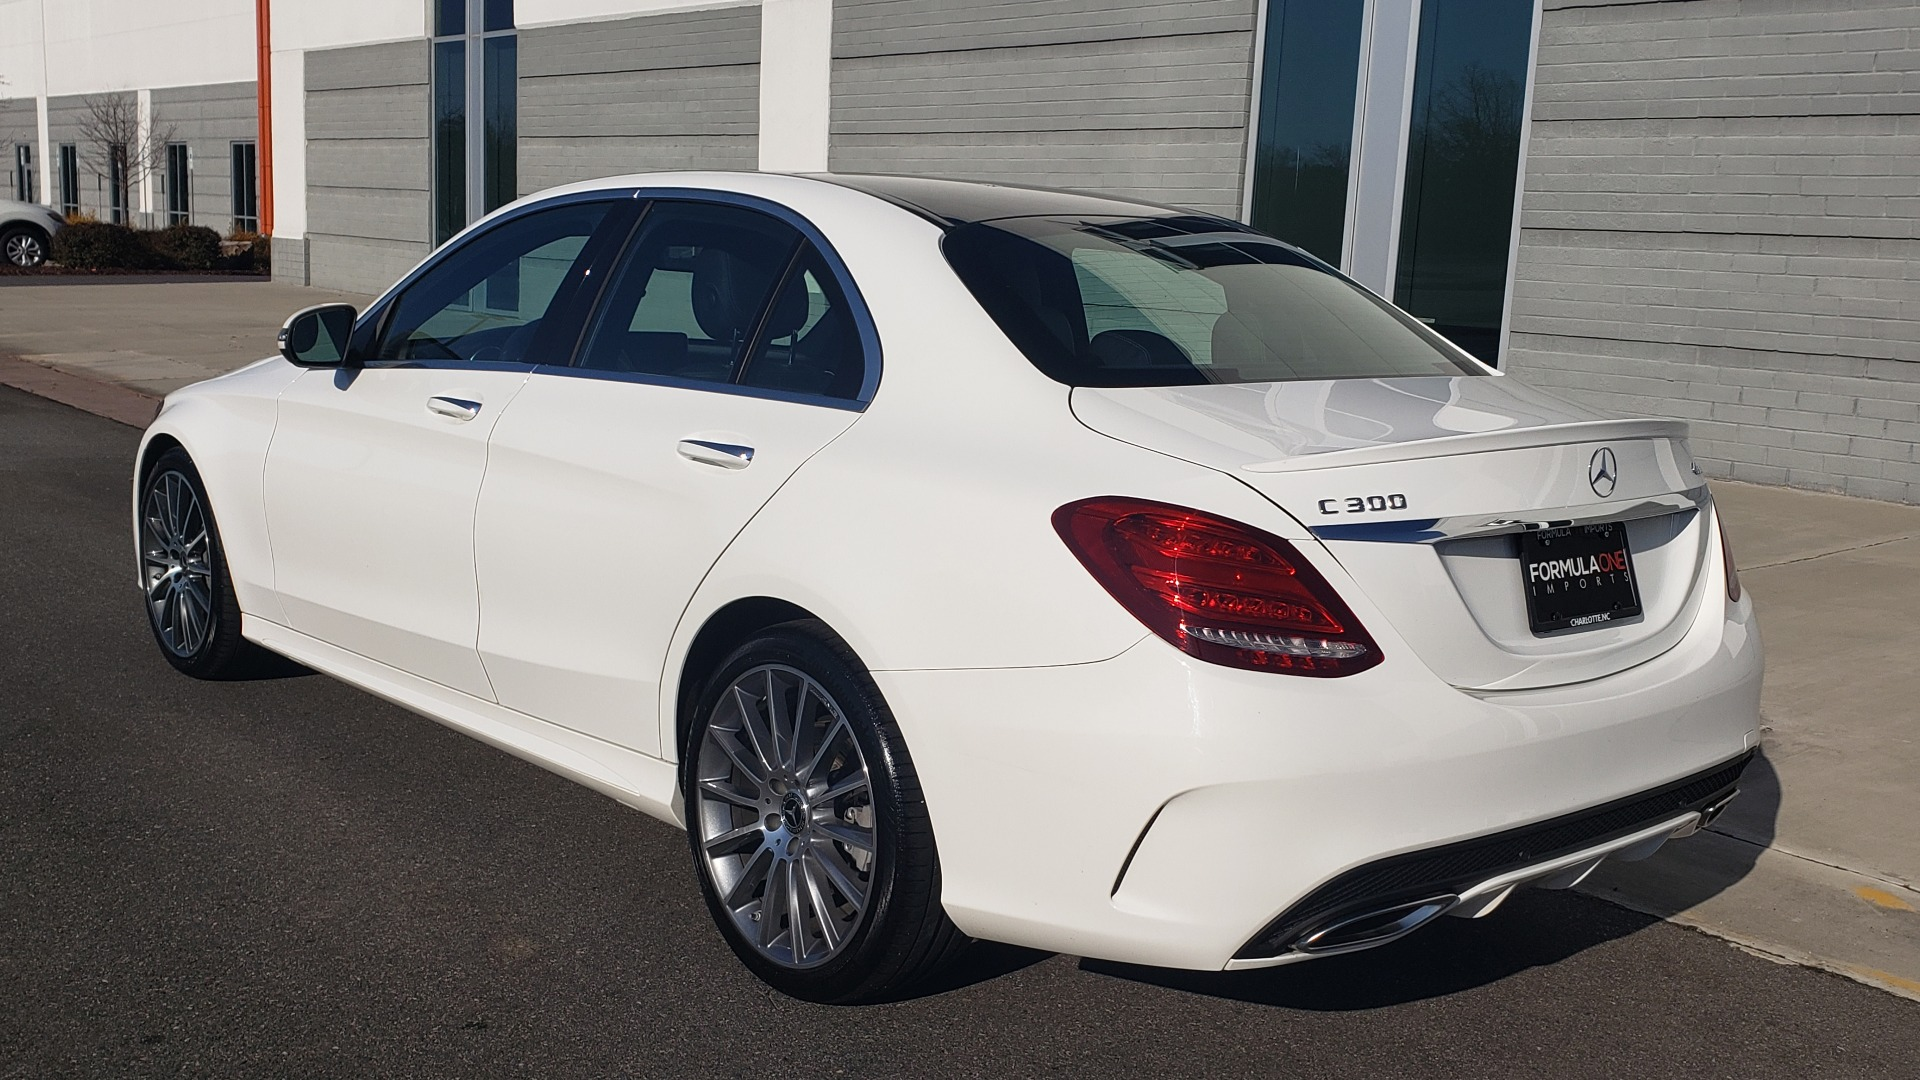 Used 2018 Mercedes-Benz C-Class C 300 PREMIUM / NAV / PANO-ROOF / AMG LINE / MULTIMEDIA for sale $28,235 at Formula Imports in Charlotte NC 28227 5